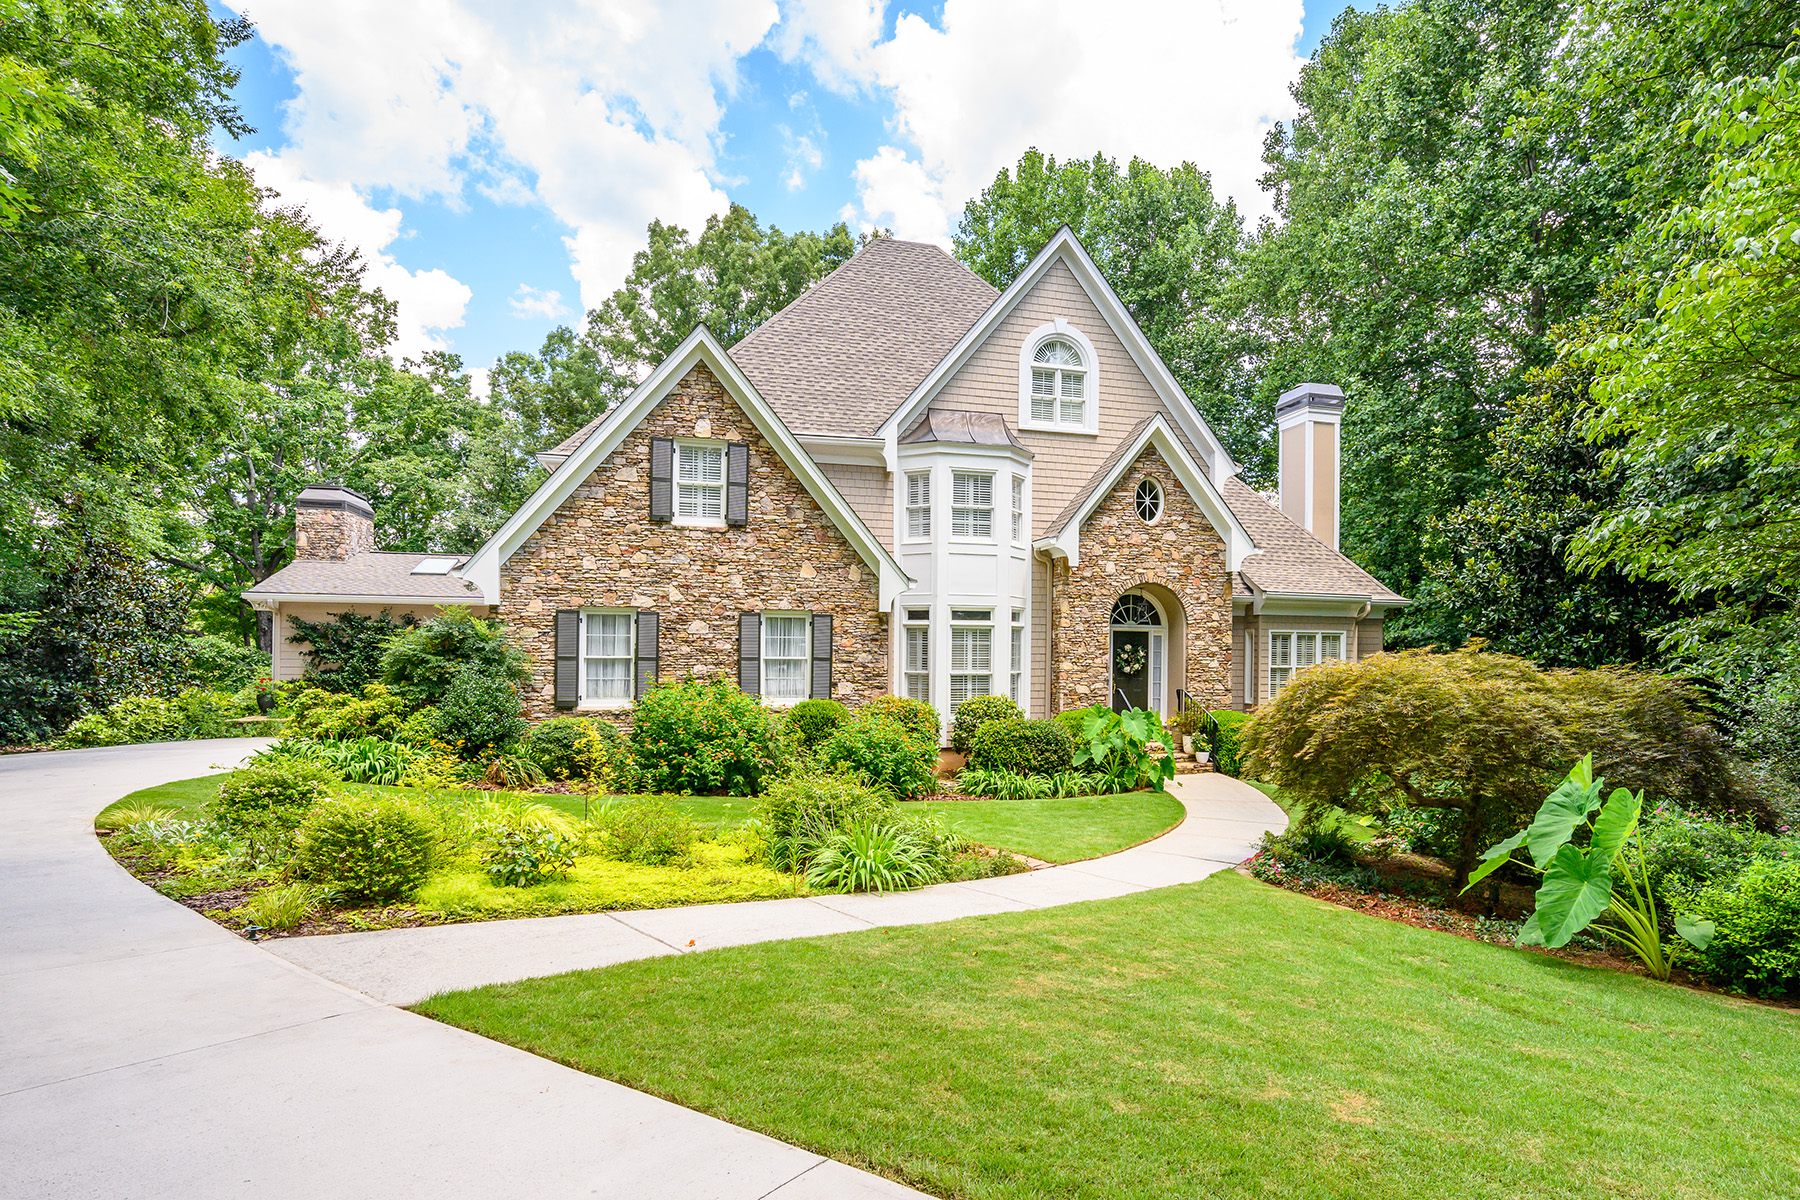 Single Family Homes for Active at Spectacular Retreat on Golf Course in Royal Lakes 4808 High Aston Flowery Branch, Georgia 30542 United States